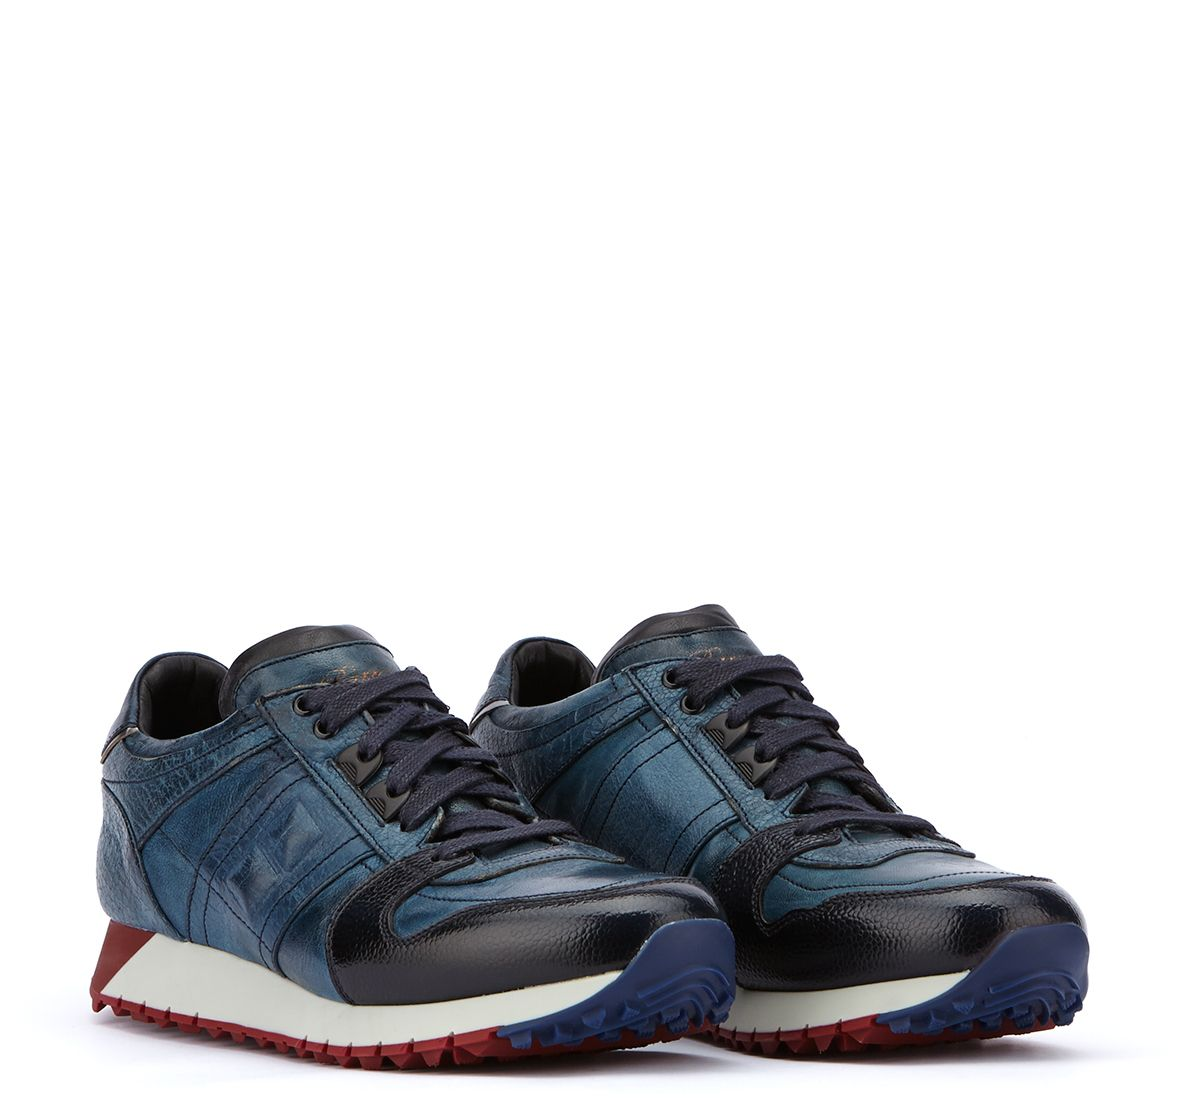 Shoes Sneakers Men Barracuda Blue White Red